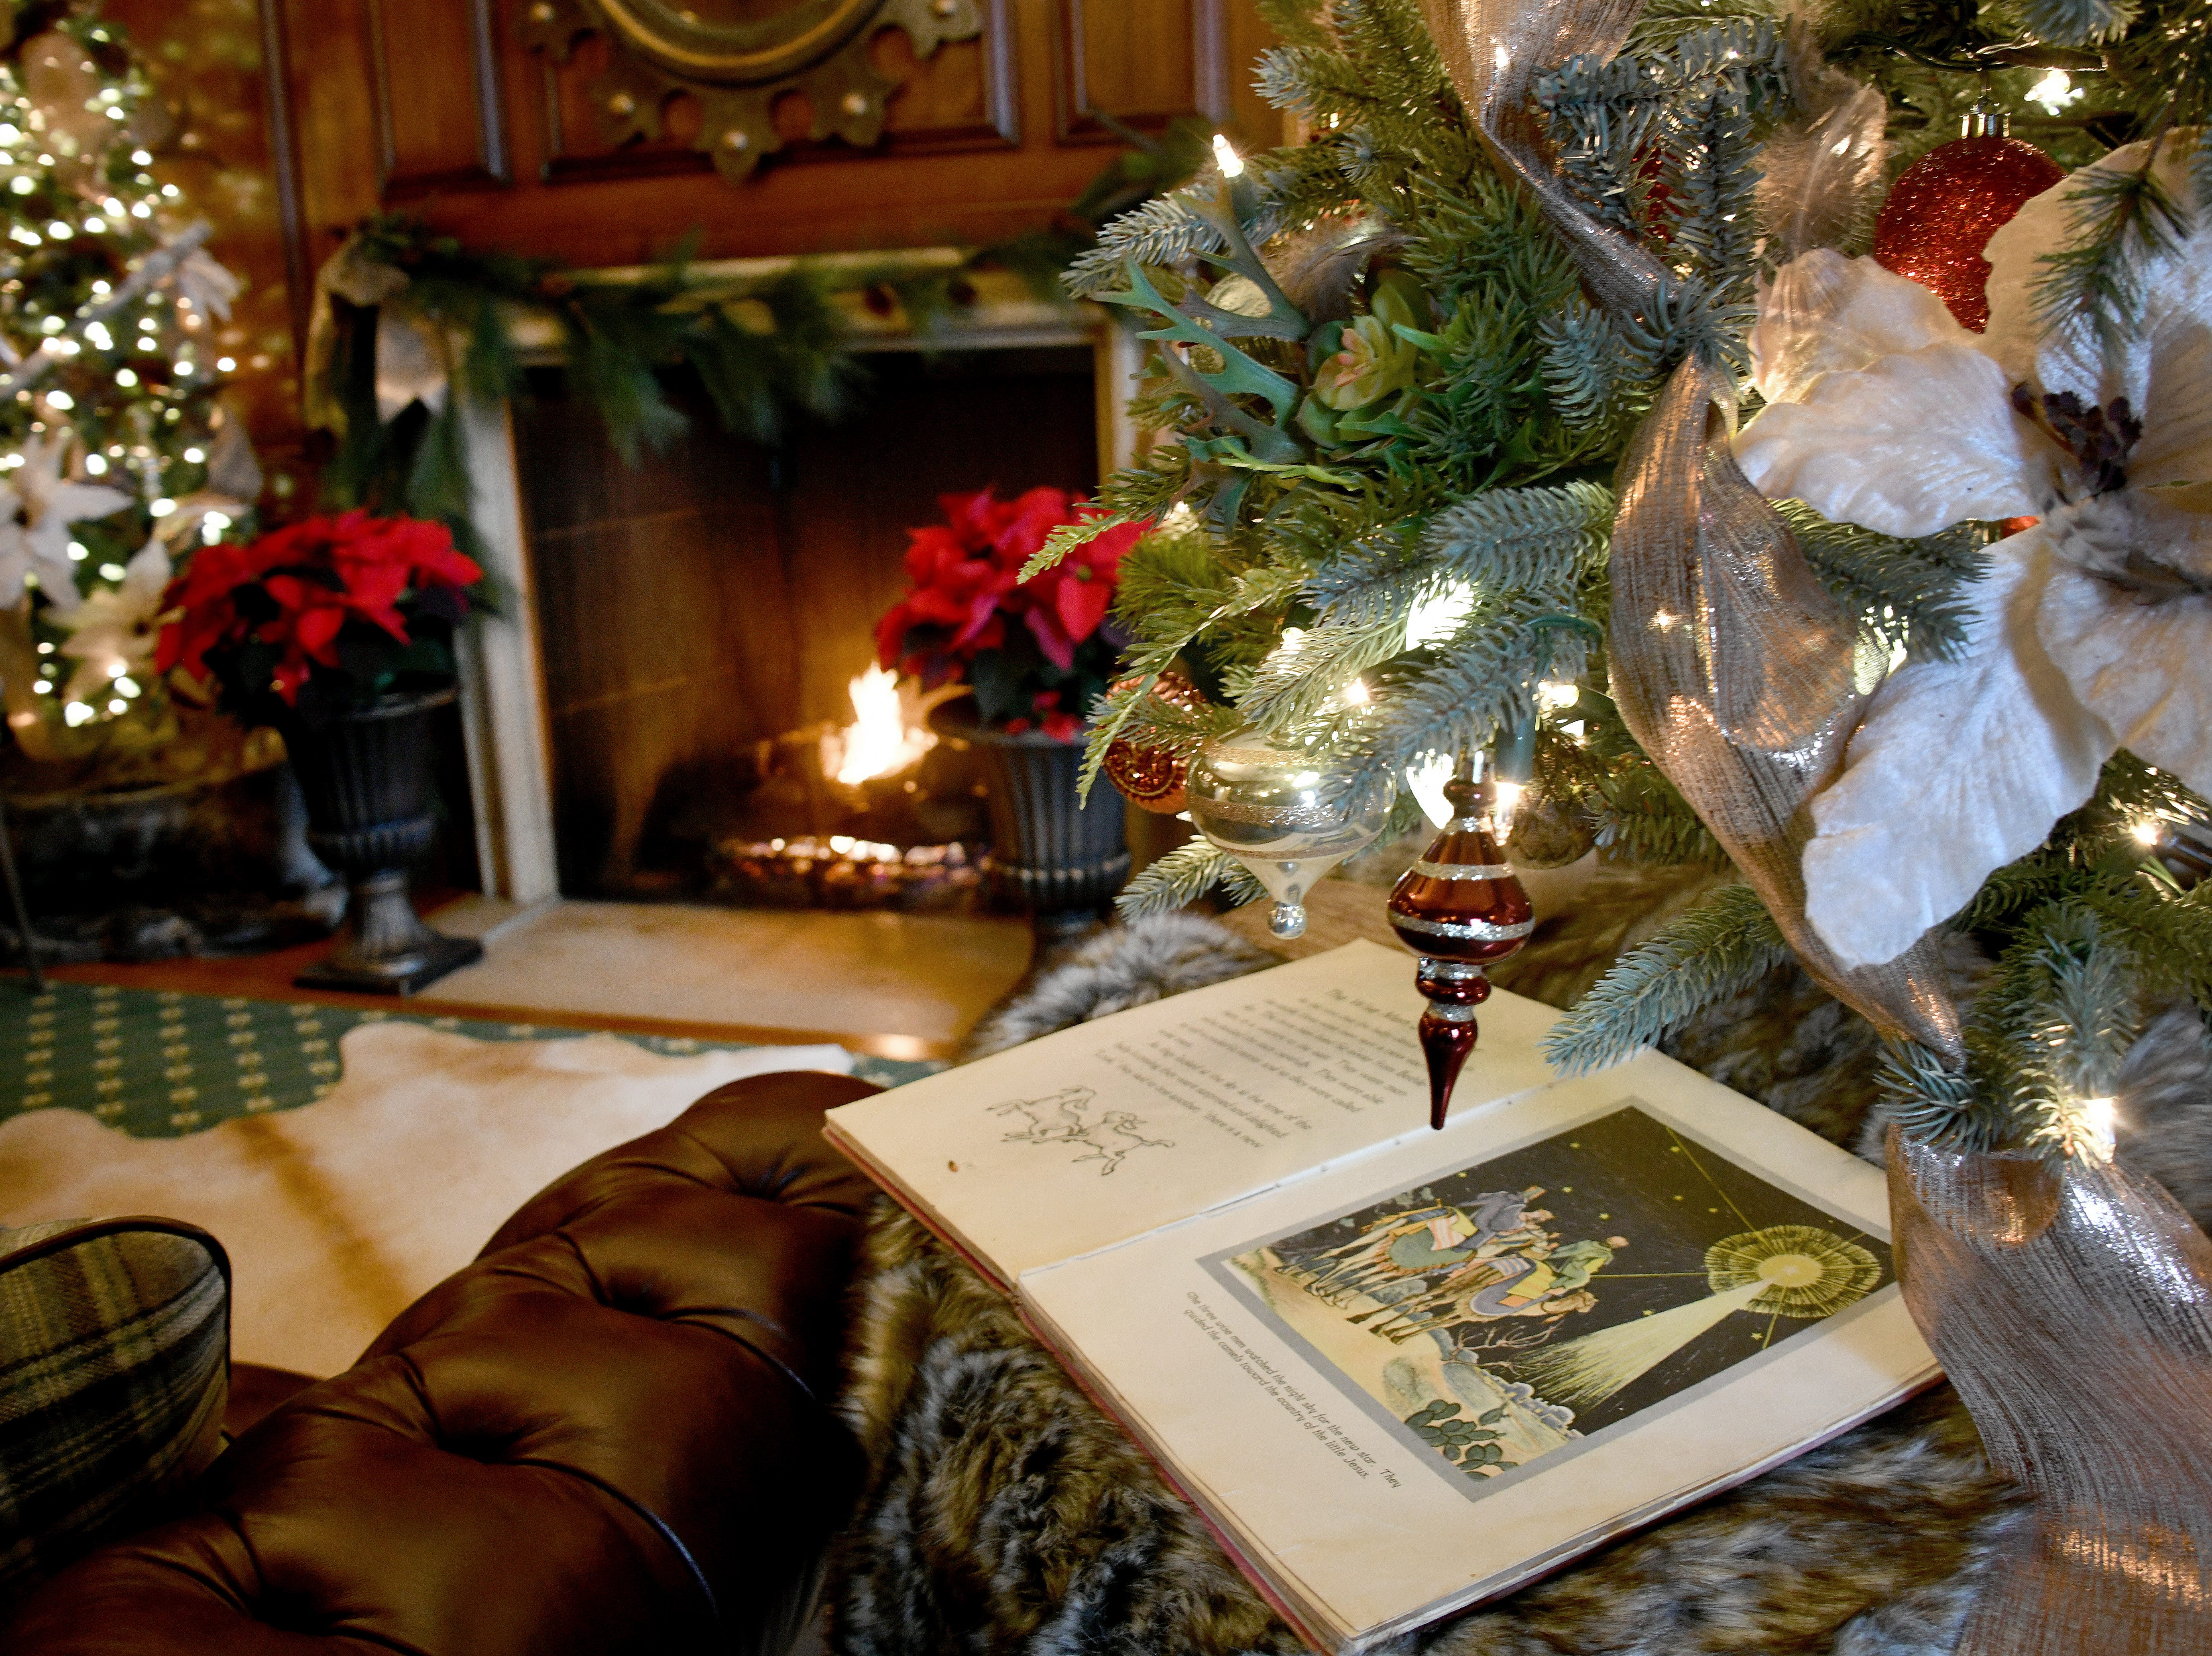 A warm fire burns in the fireplace in the where deep, cozy chairs await and Christmas reading is available for those with time to kill.